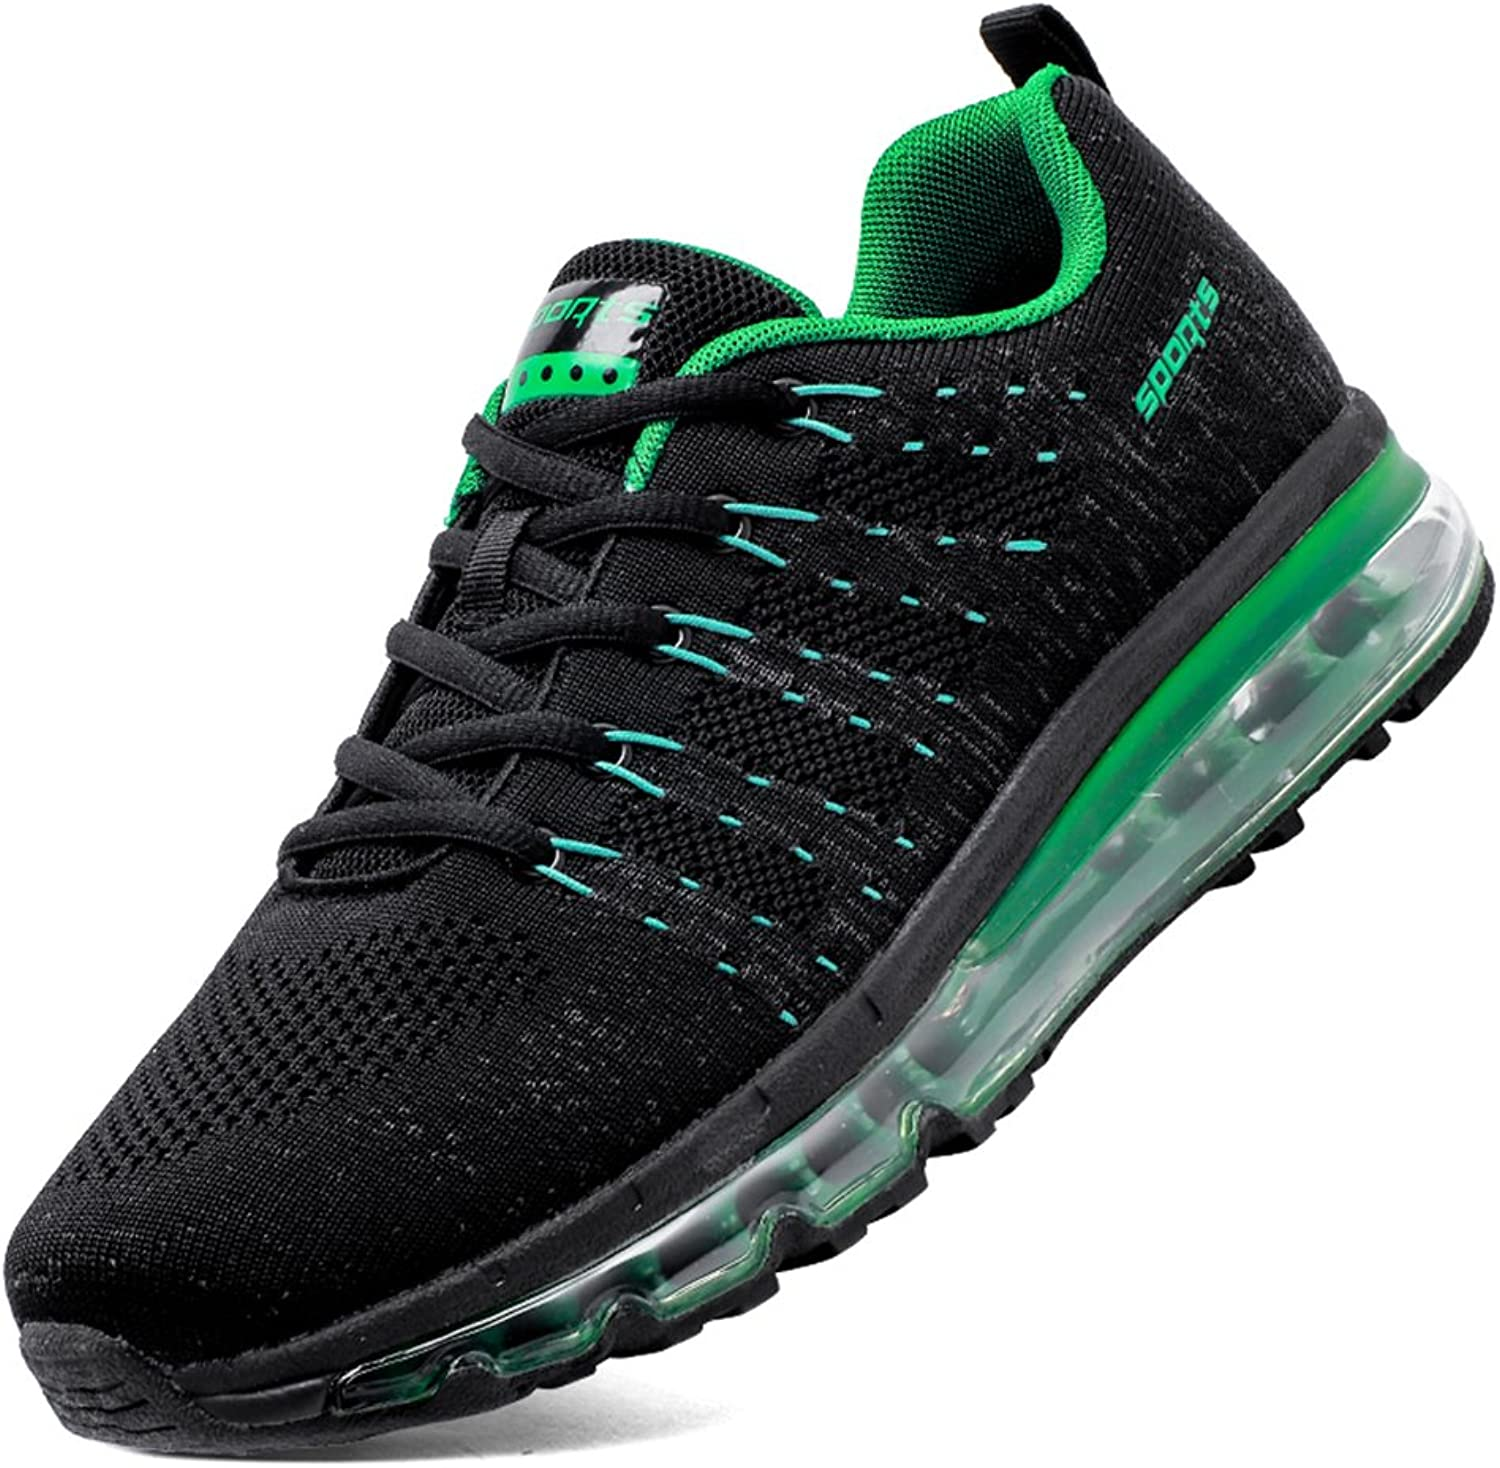 SKDOIUL Men Tennis shoes Size 12 for Flyknit Fashion Sneakers Breathable Comfort air Cushion Youth Boys Running shoes Gym Workout Trail Sneaker Size 12 (8067 Green 46)